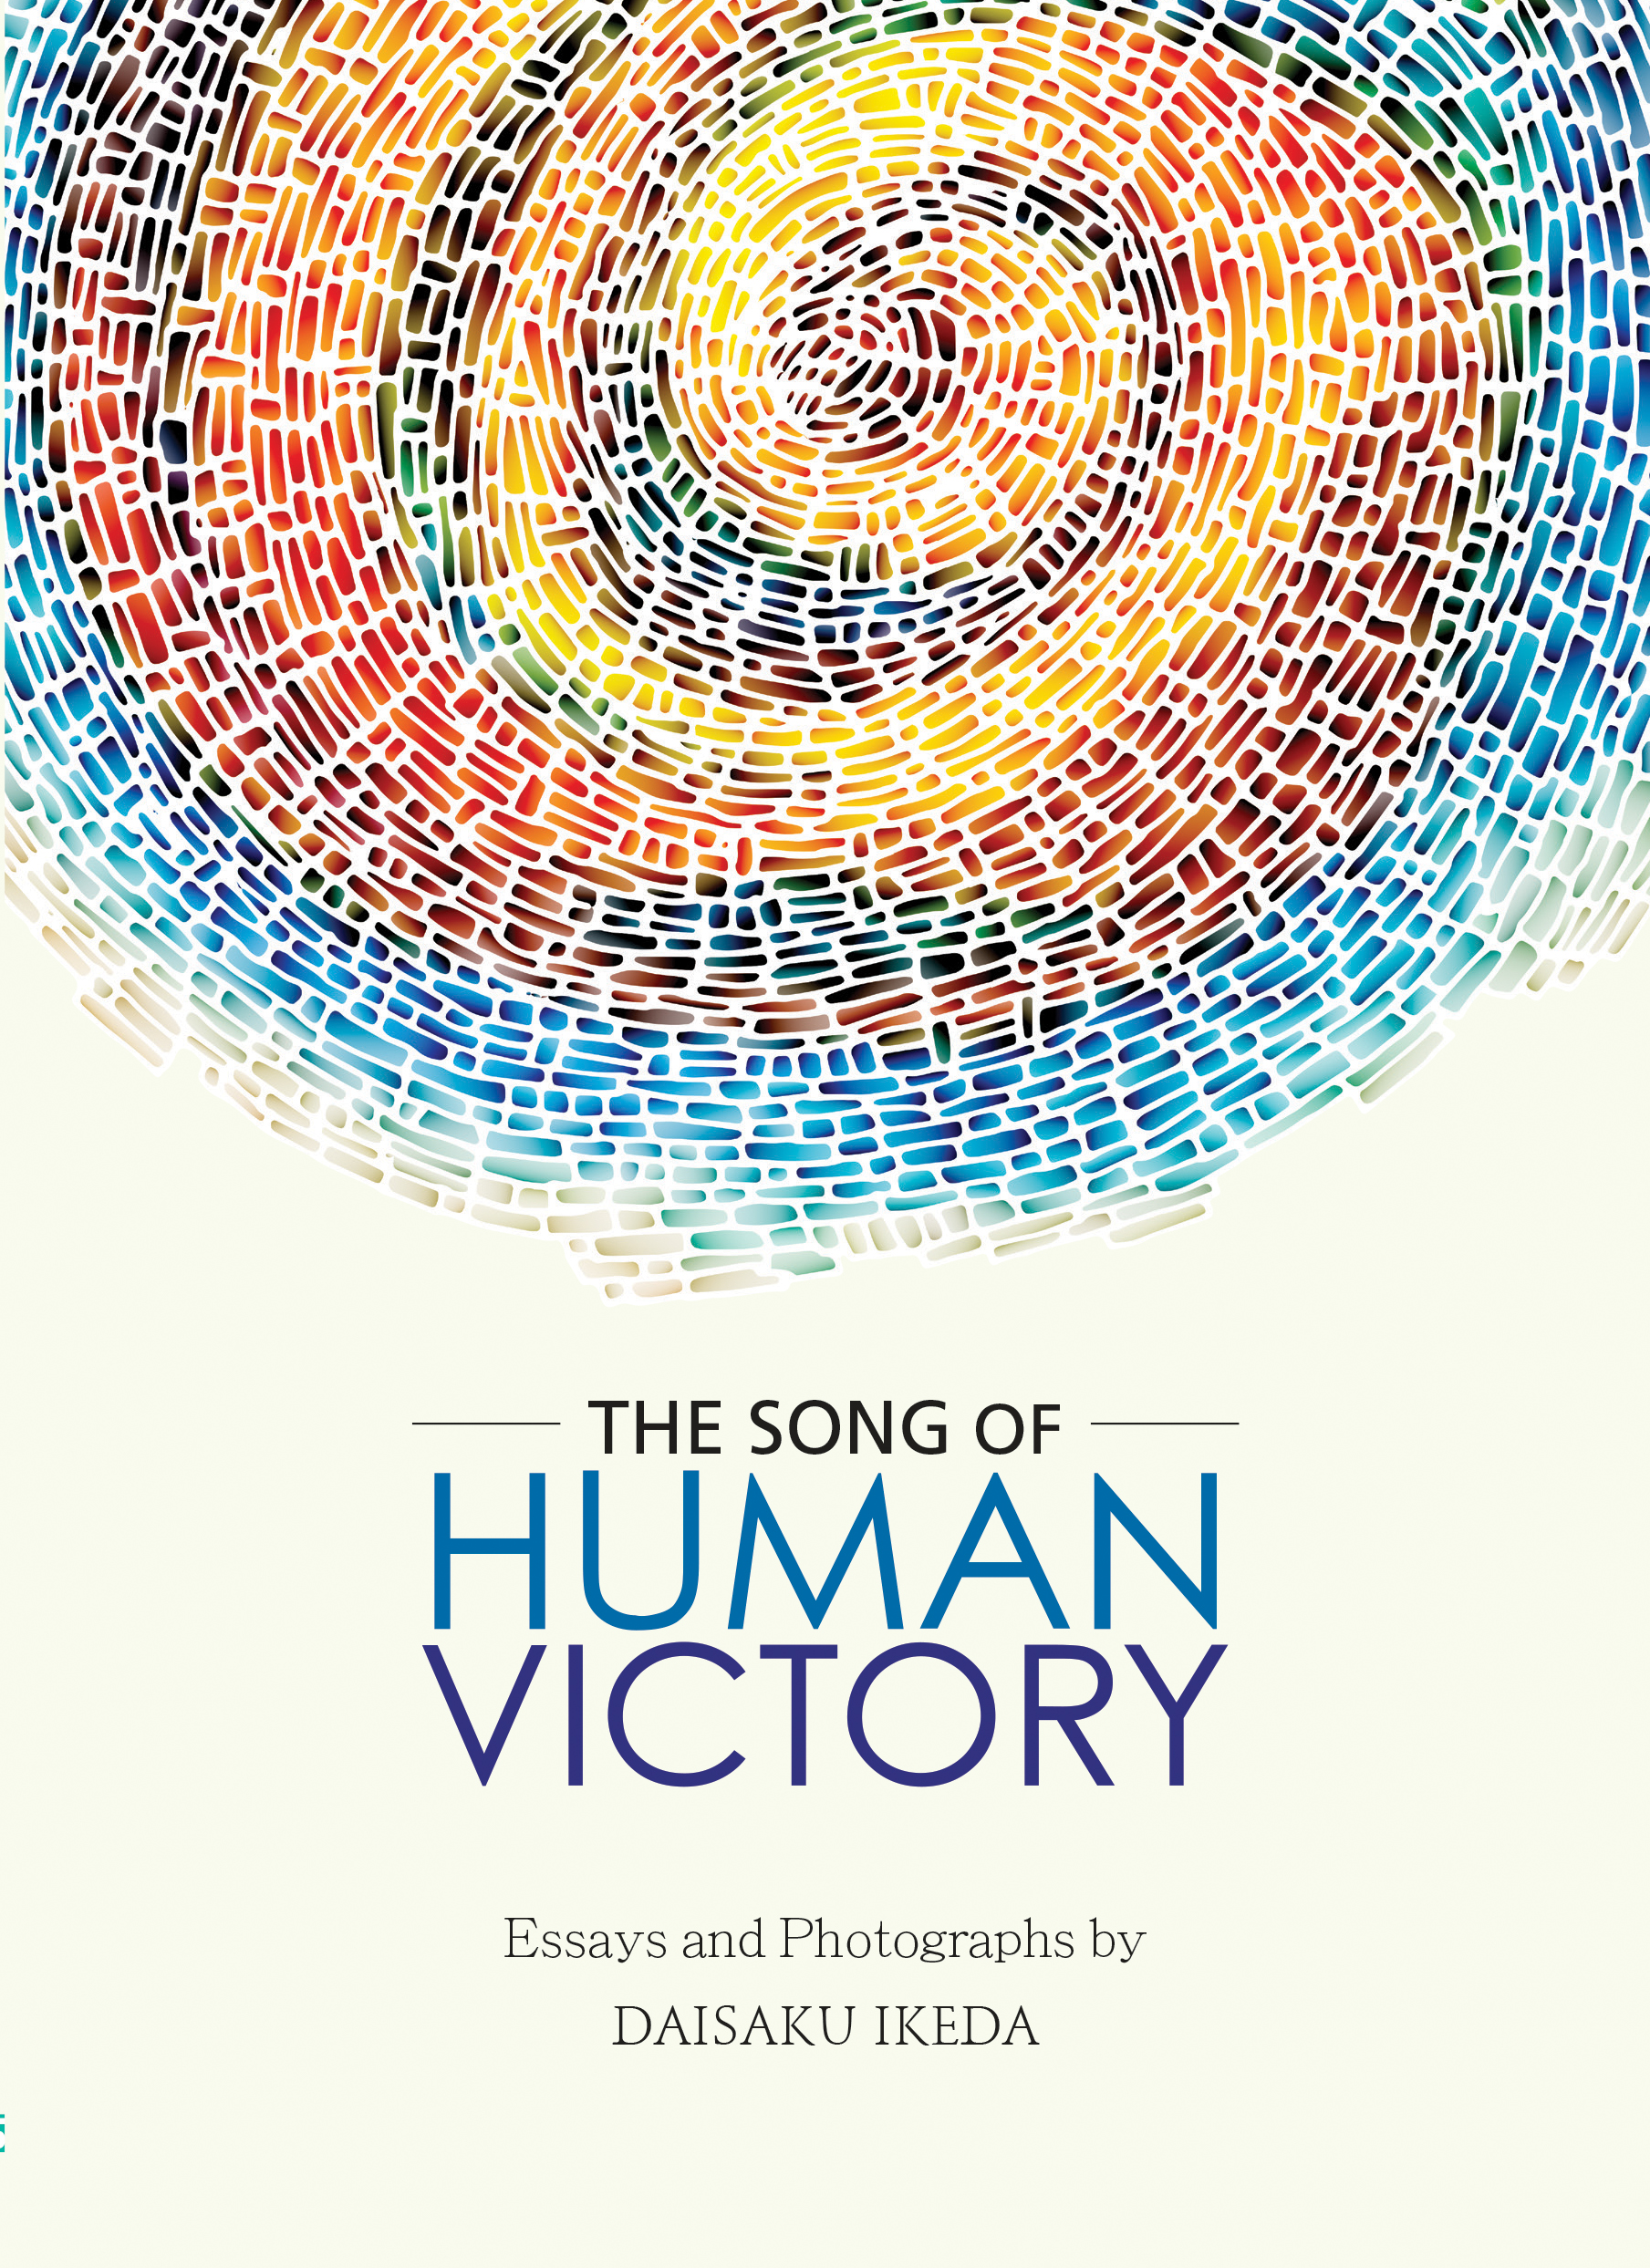 The Song of Human Victory